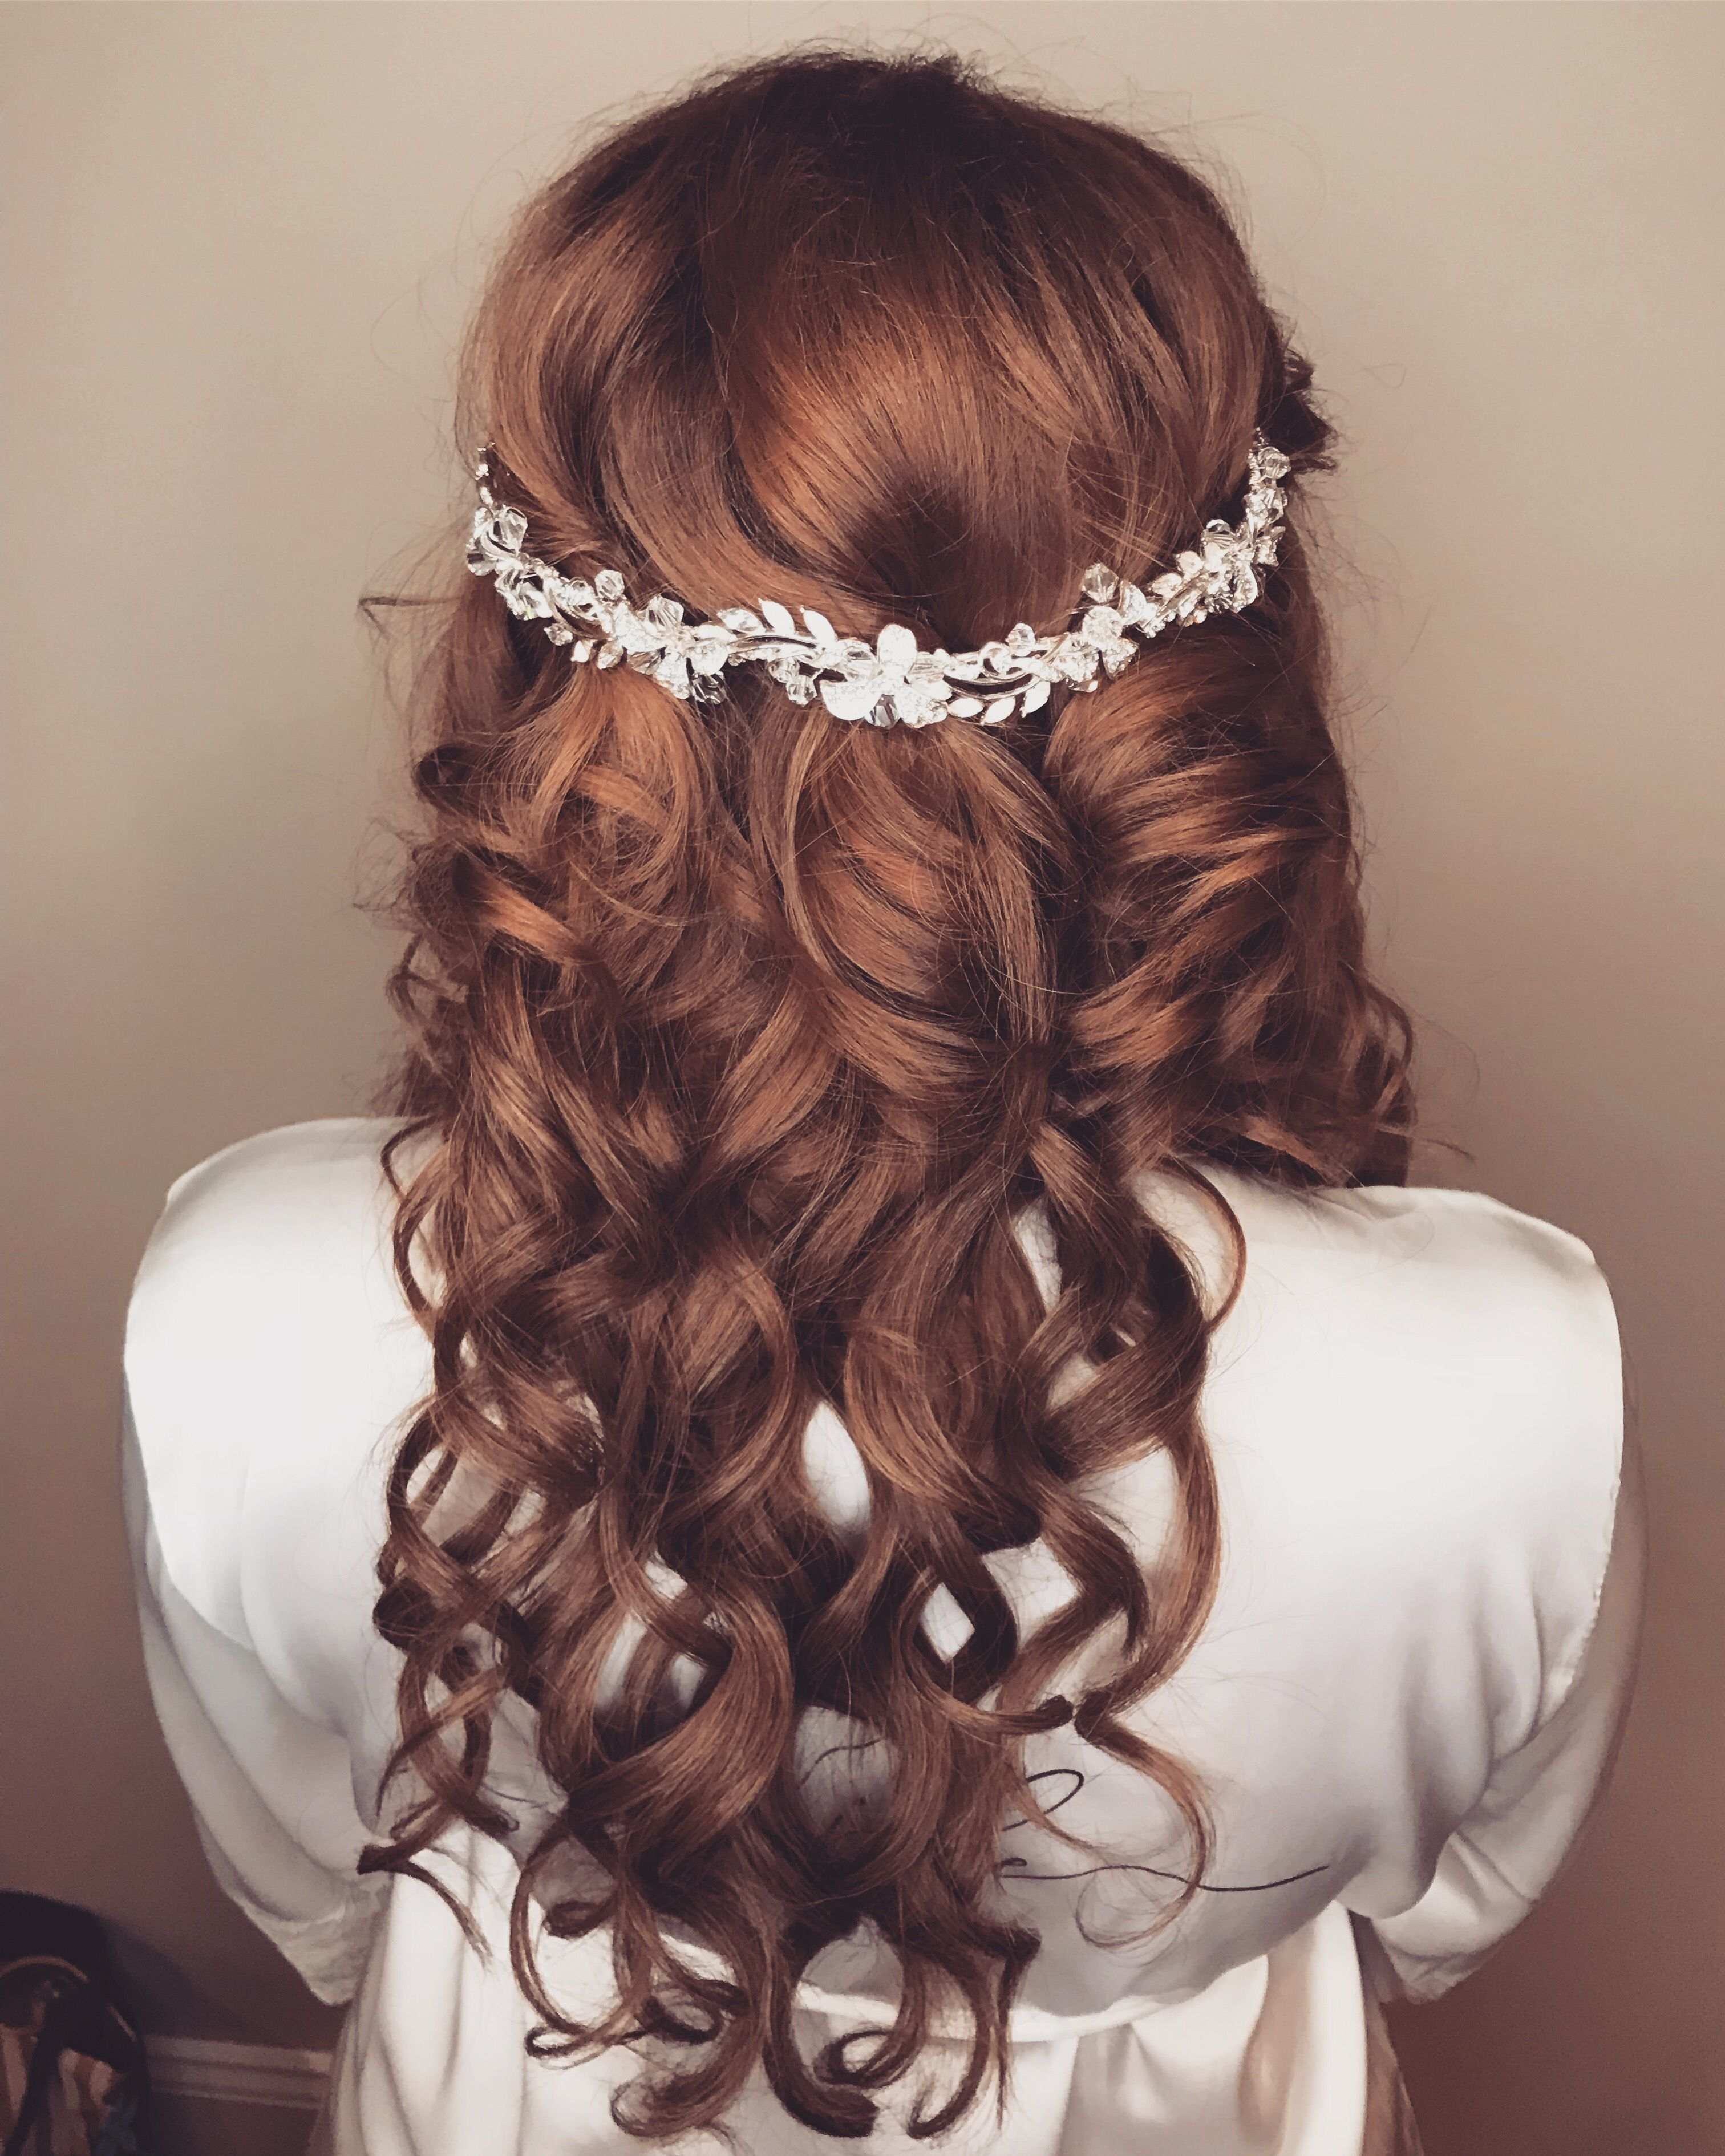 bridal hair style with extensions and a hair piece | bridal